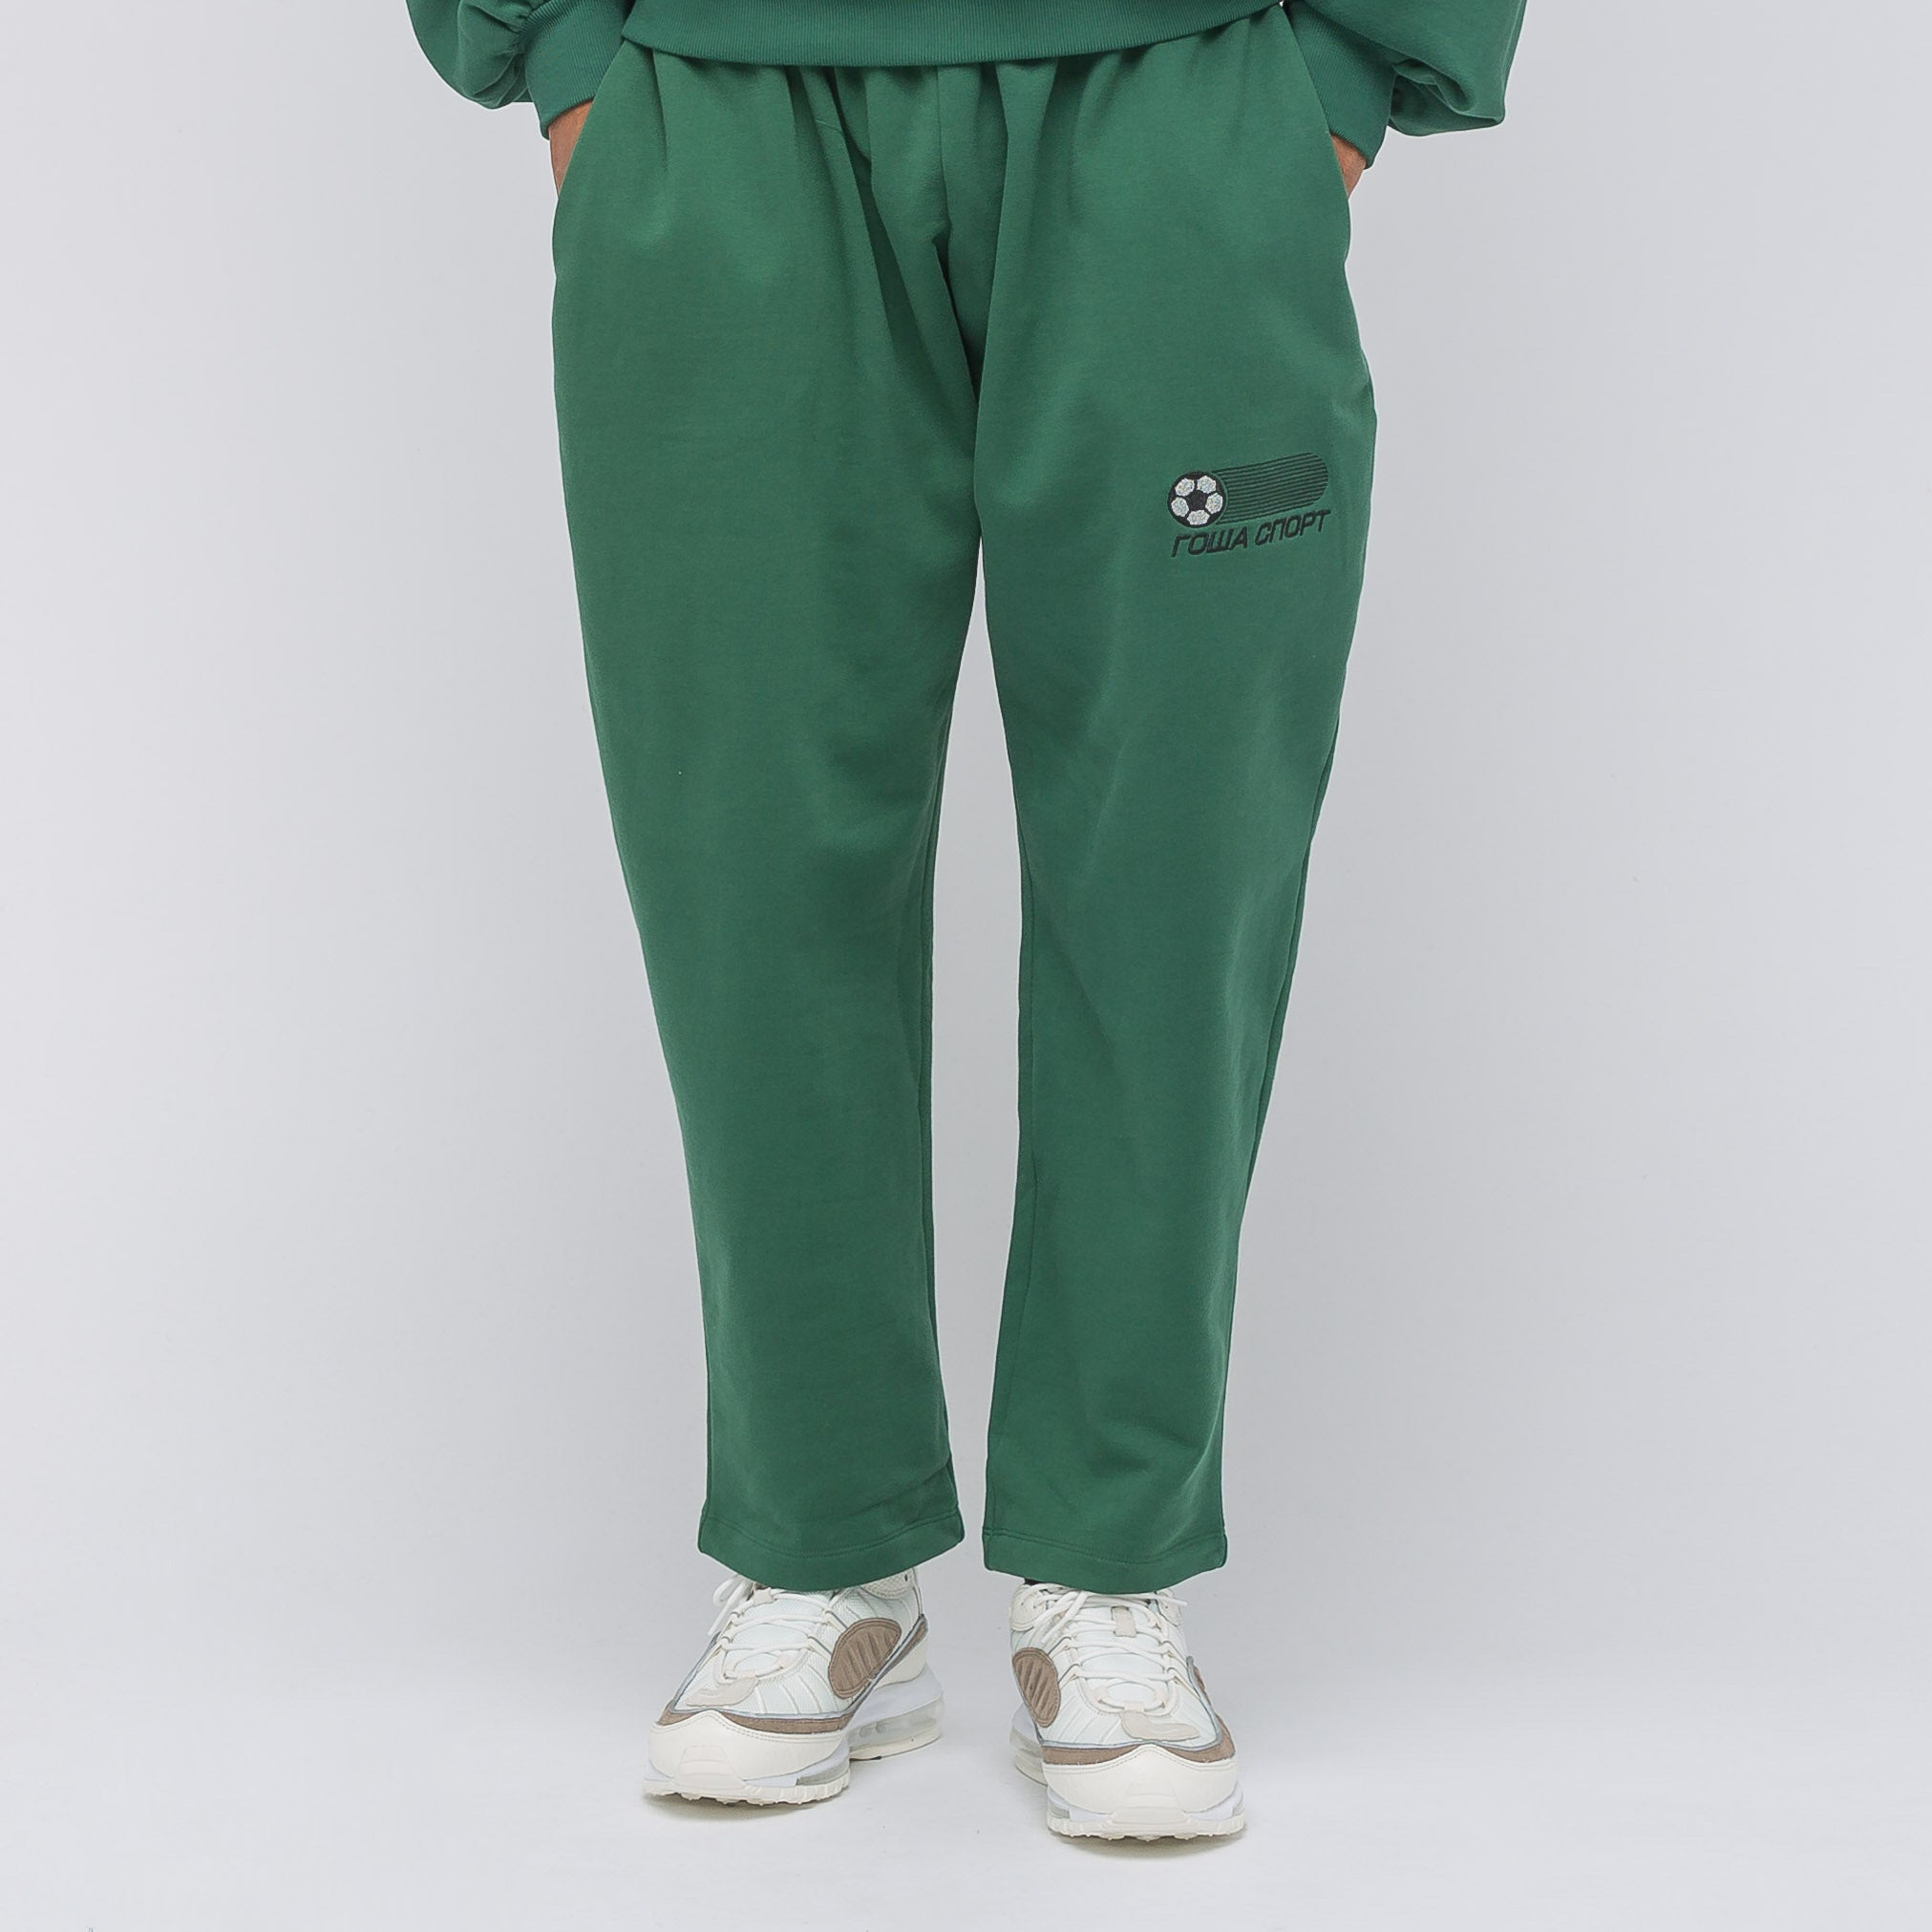 Gosha Sport Sweatpant in Green